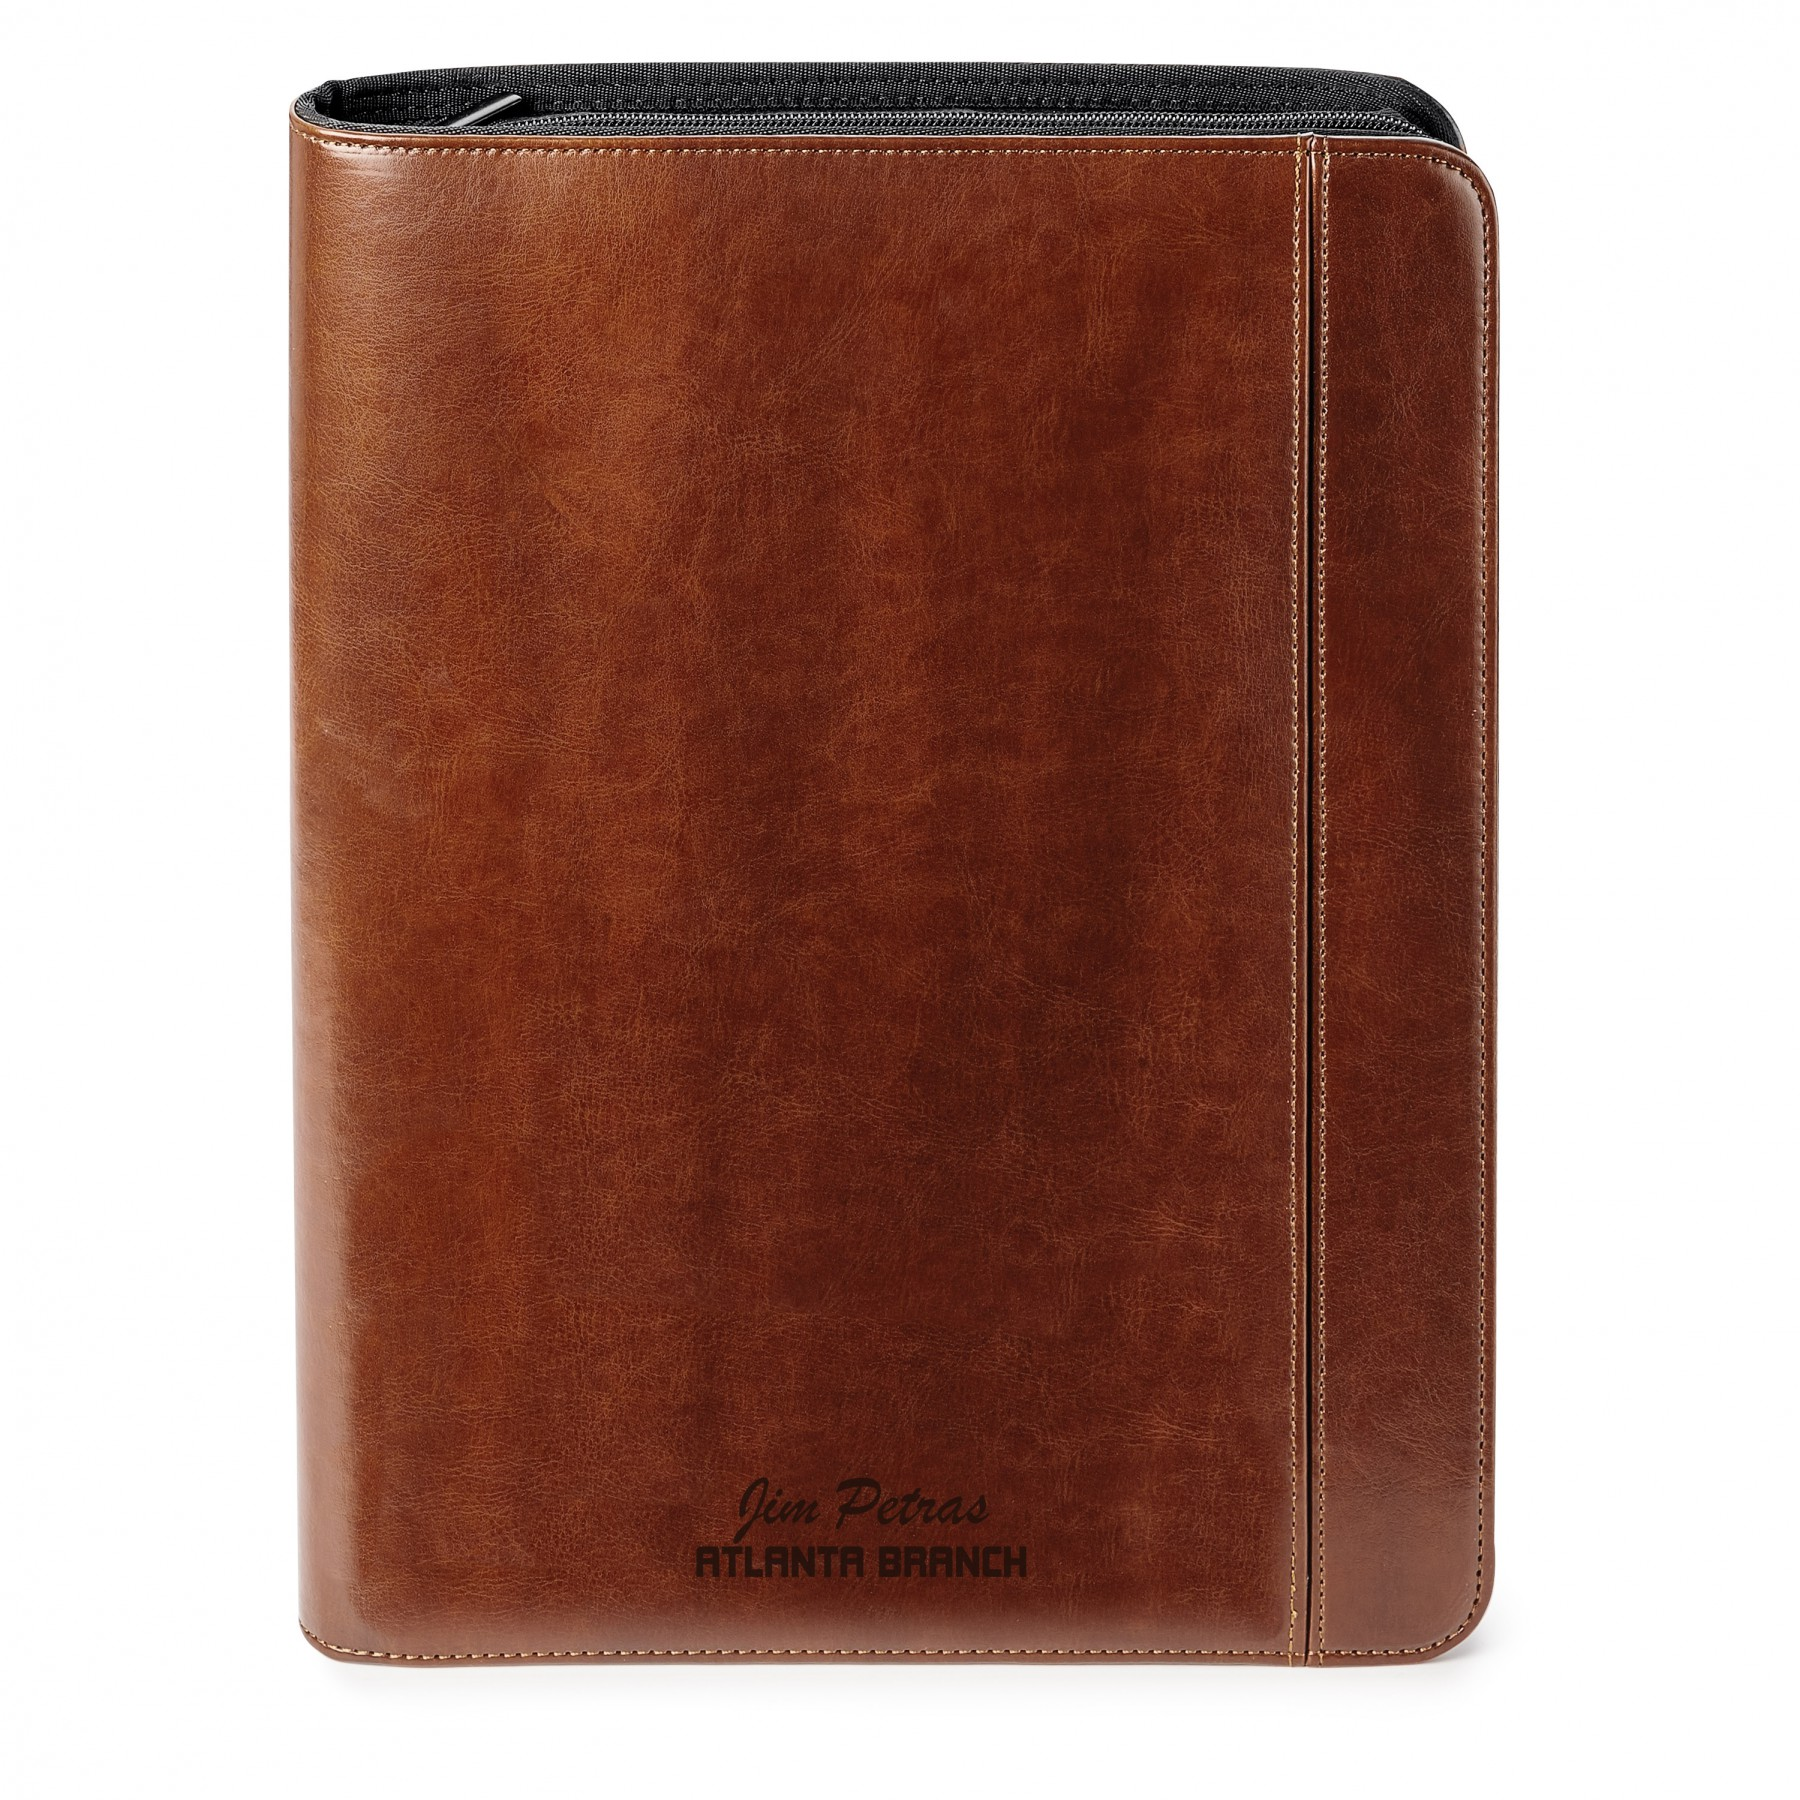 FABRIZIO 5,000 mAh POWER BANK ZIP PORTFOLIO, T112, Debossed Logo